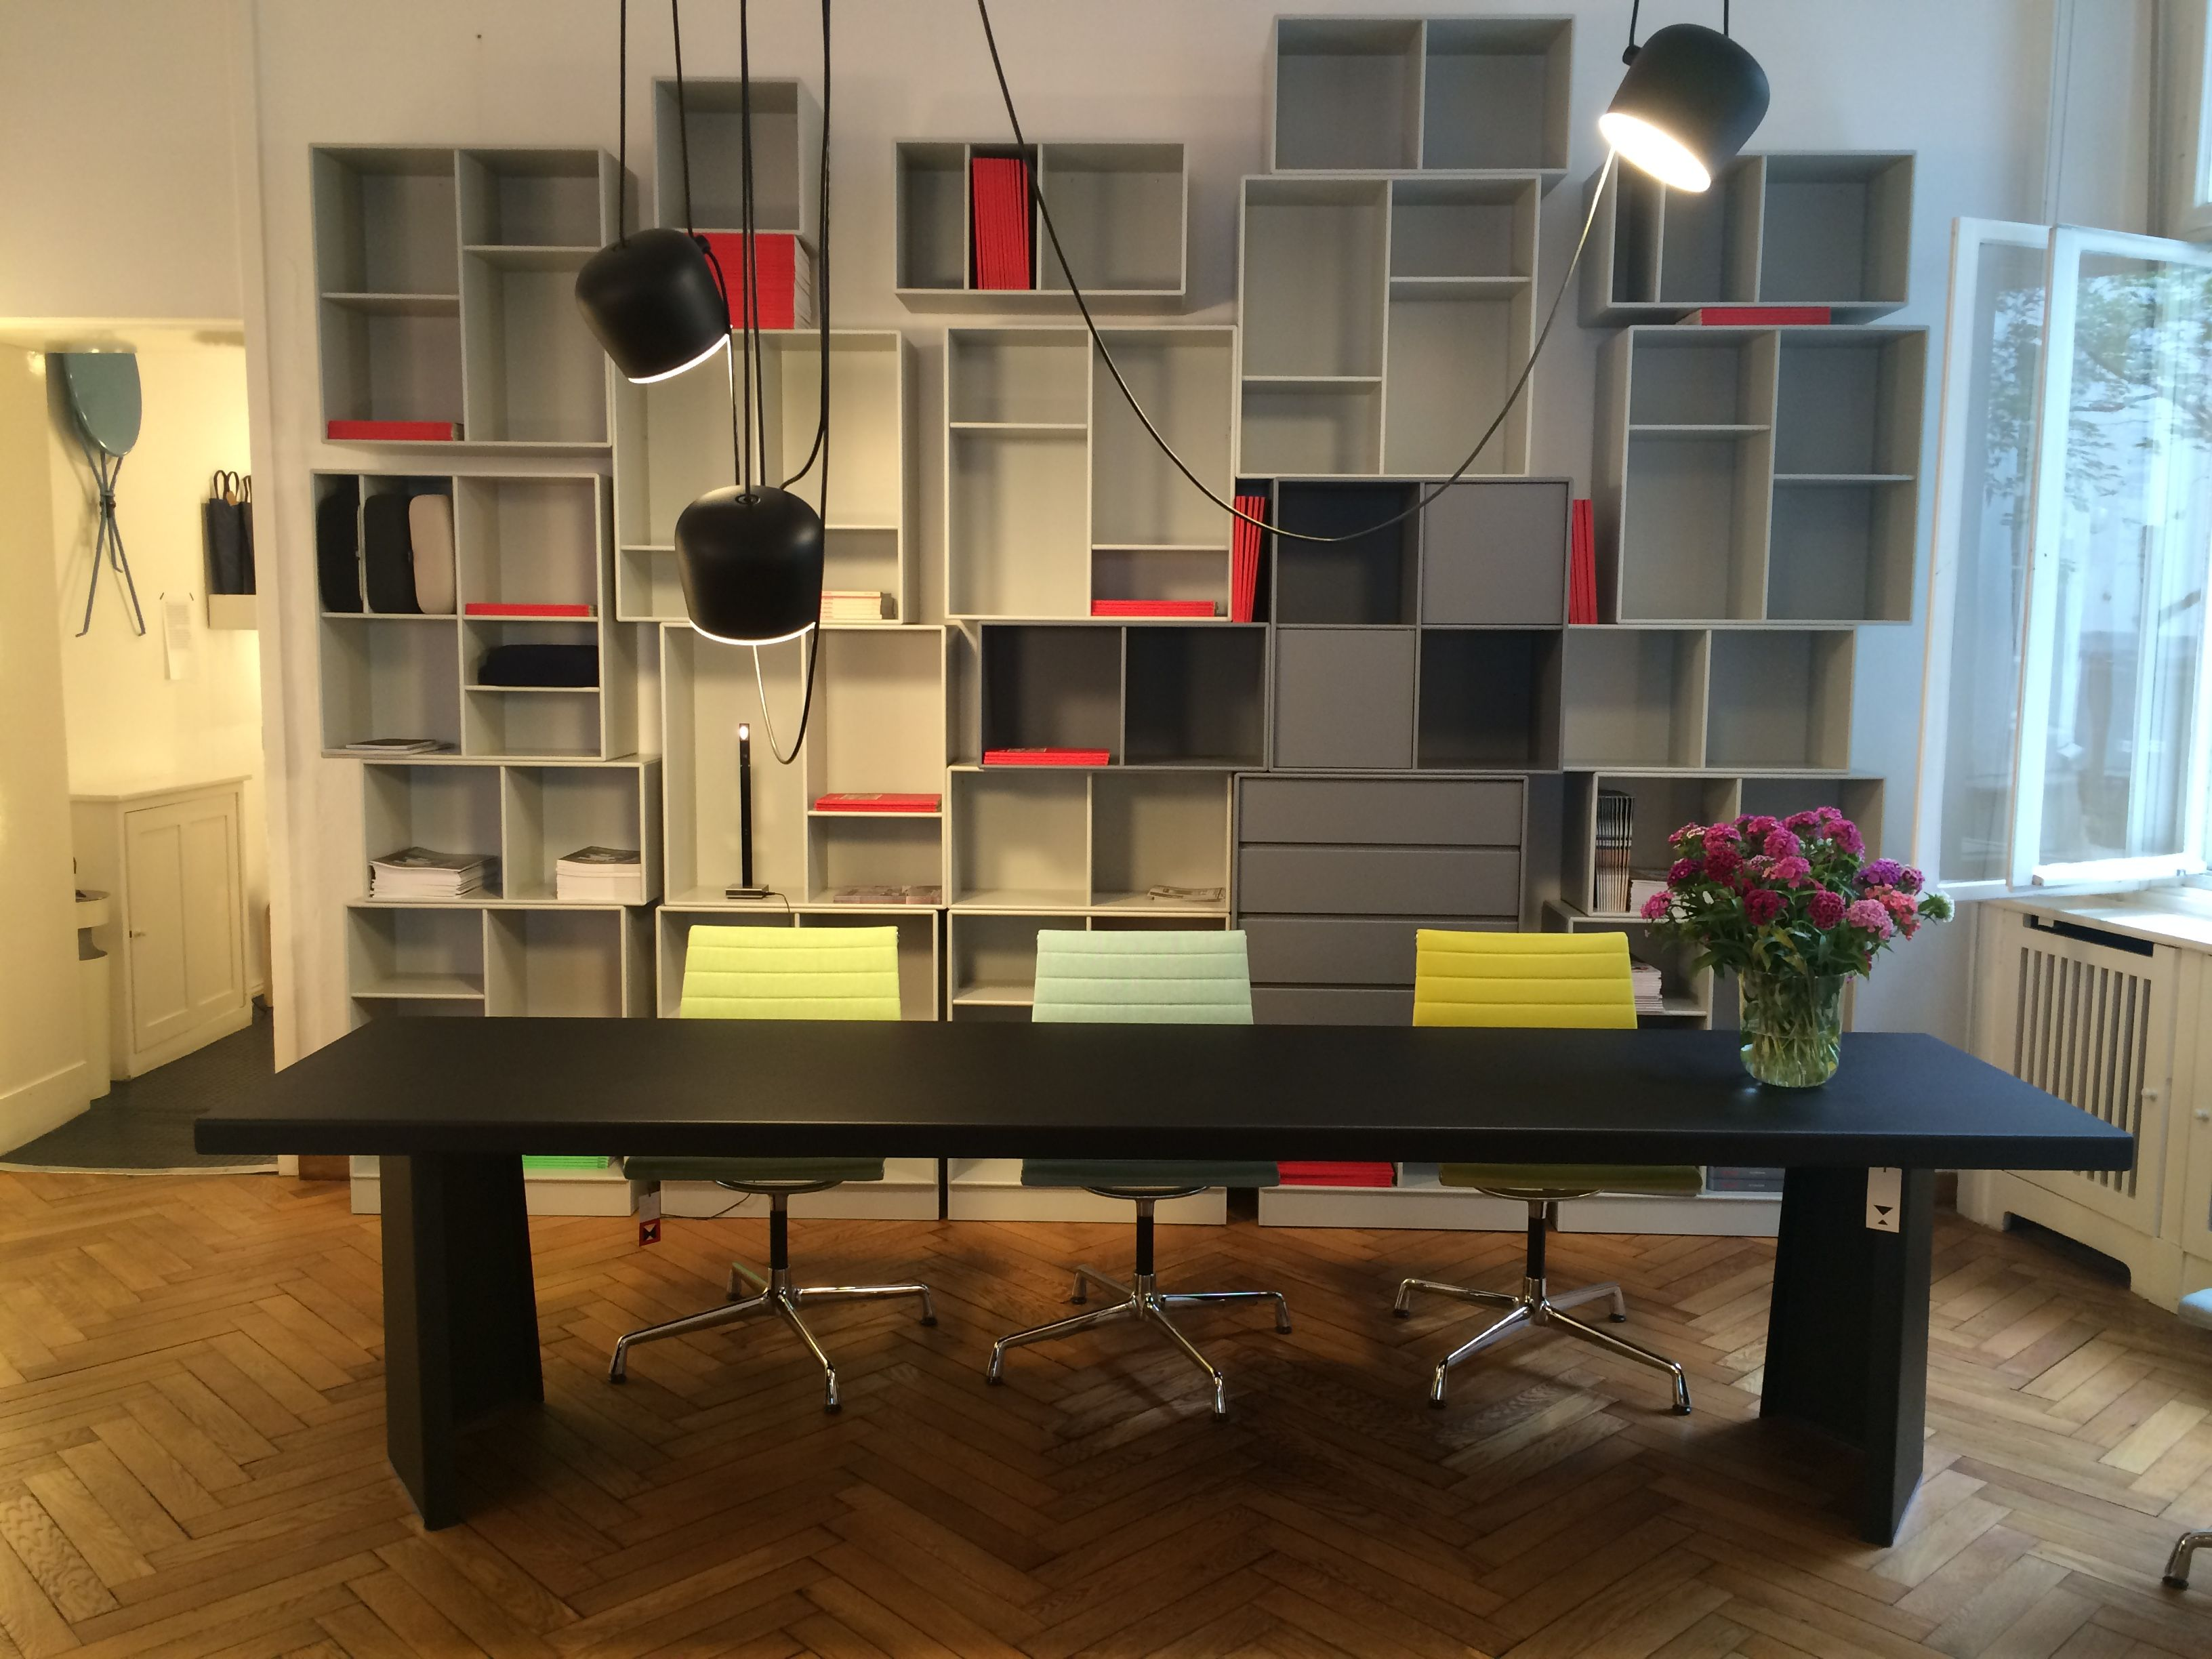 official classicon partner modus in berlin pallas table by konstantin grcic for classicon. Black Bedroom Furniture Sets. Home Design Ideas